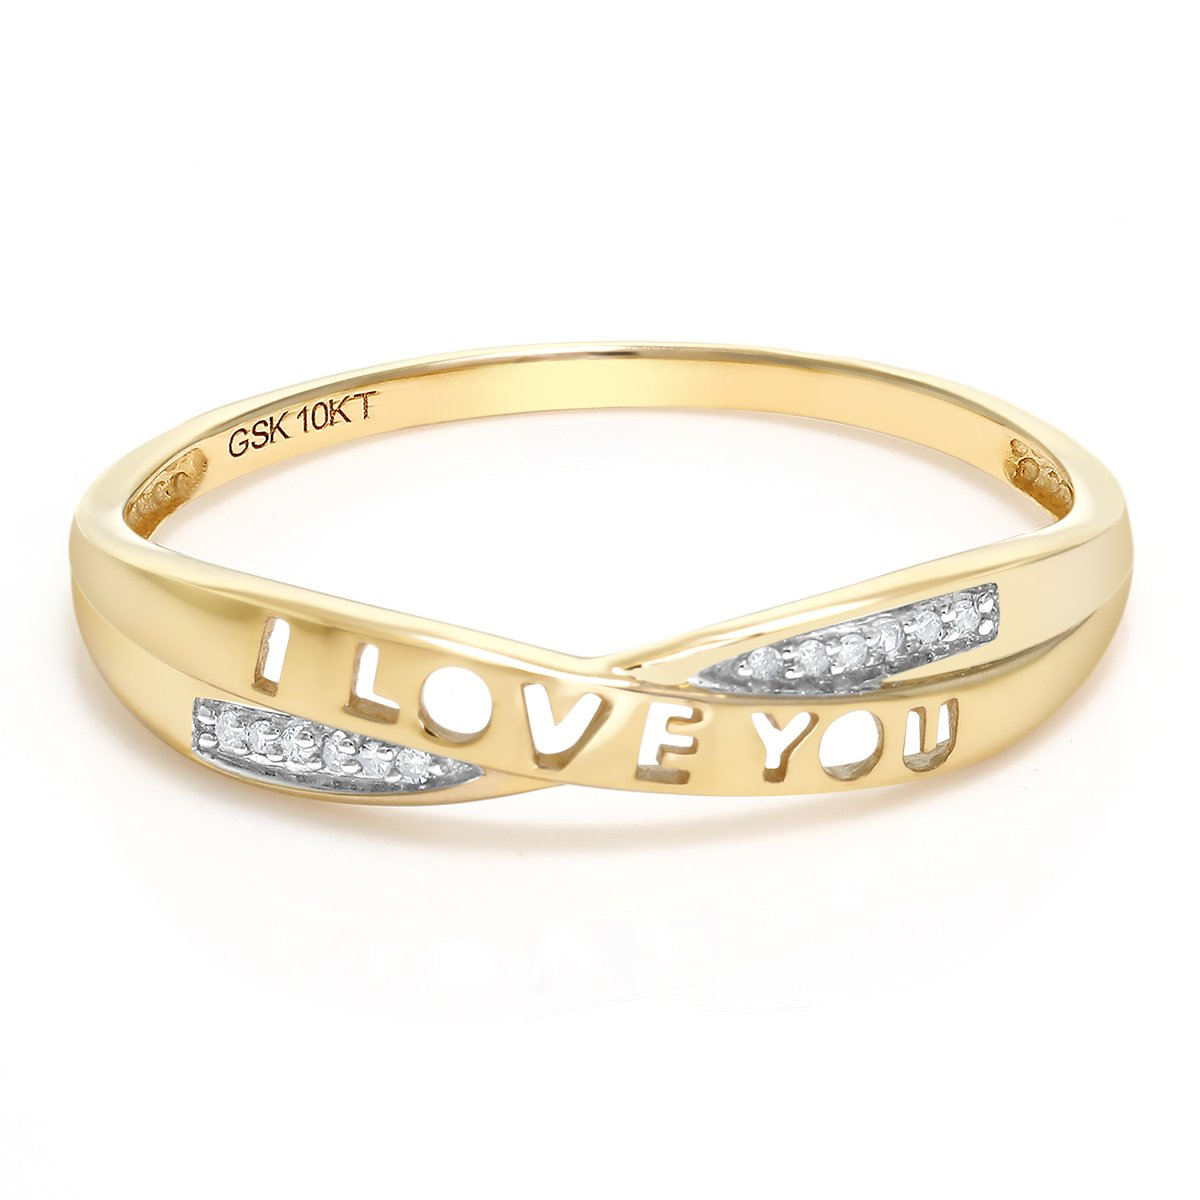 10K Solid Yellow Gold I Love You 0.18 Ctw White Diamond Anniversary Band (Available 5, 6, 7, 8, 9) IJM-0253